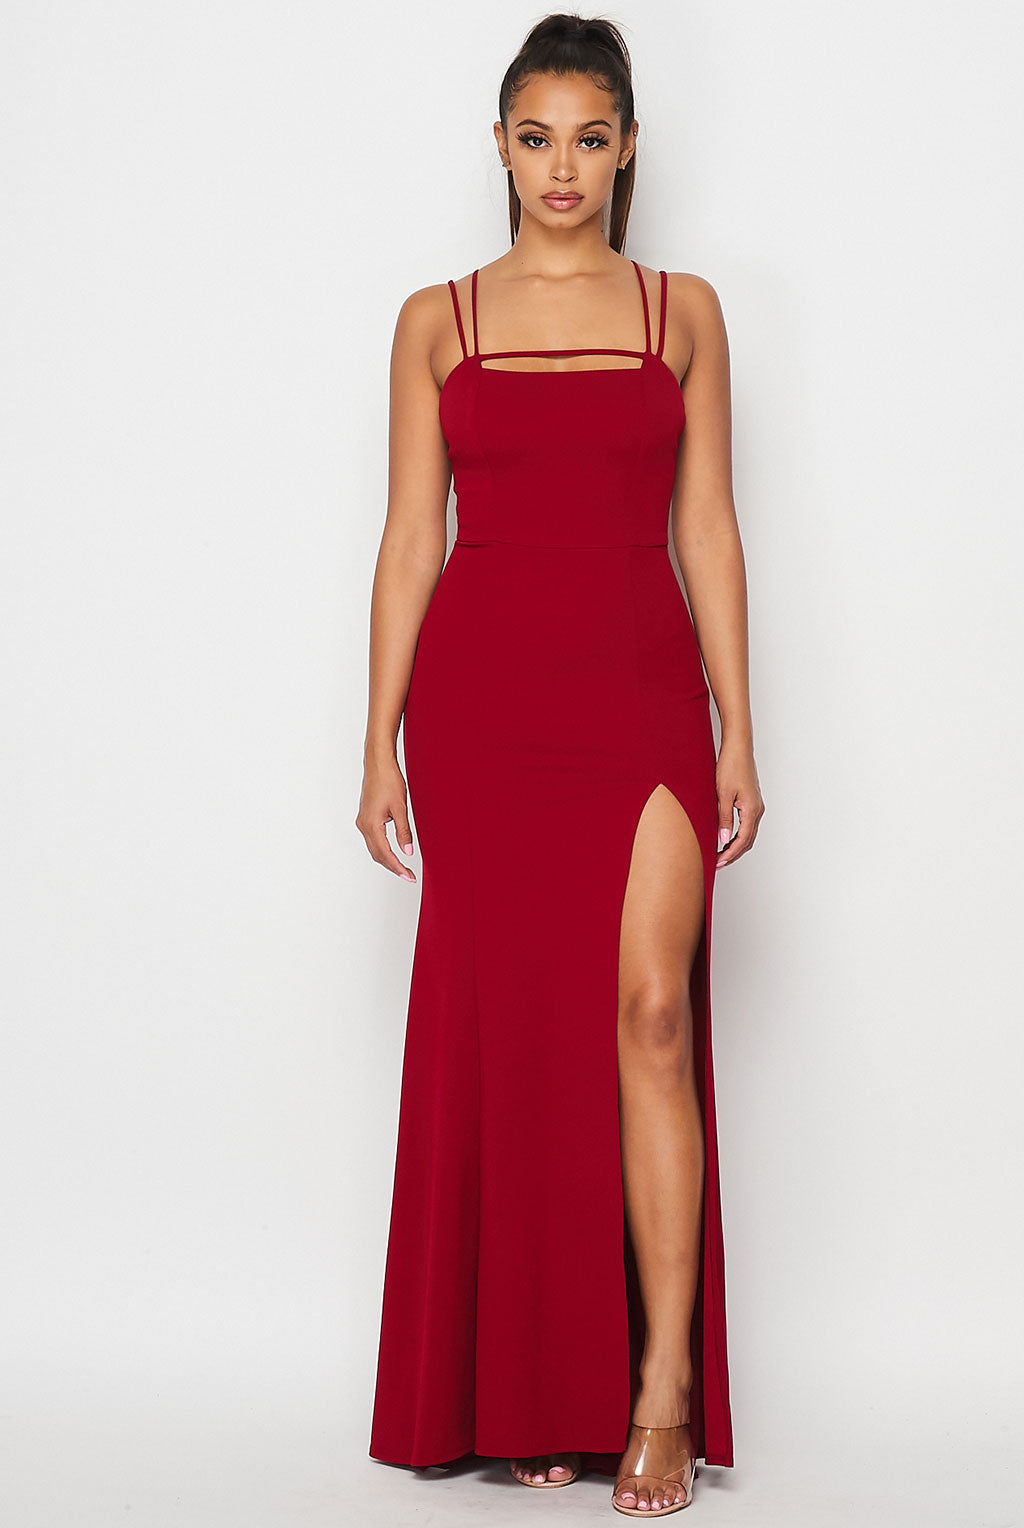 Teeze Me | Double Spaghetti Strap Front Slit Long Dress | Burgundy